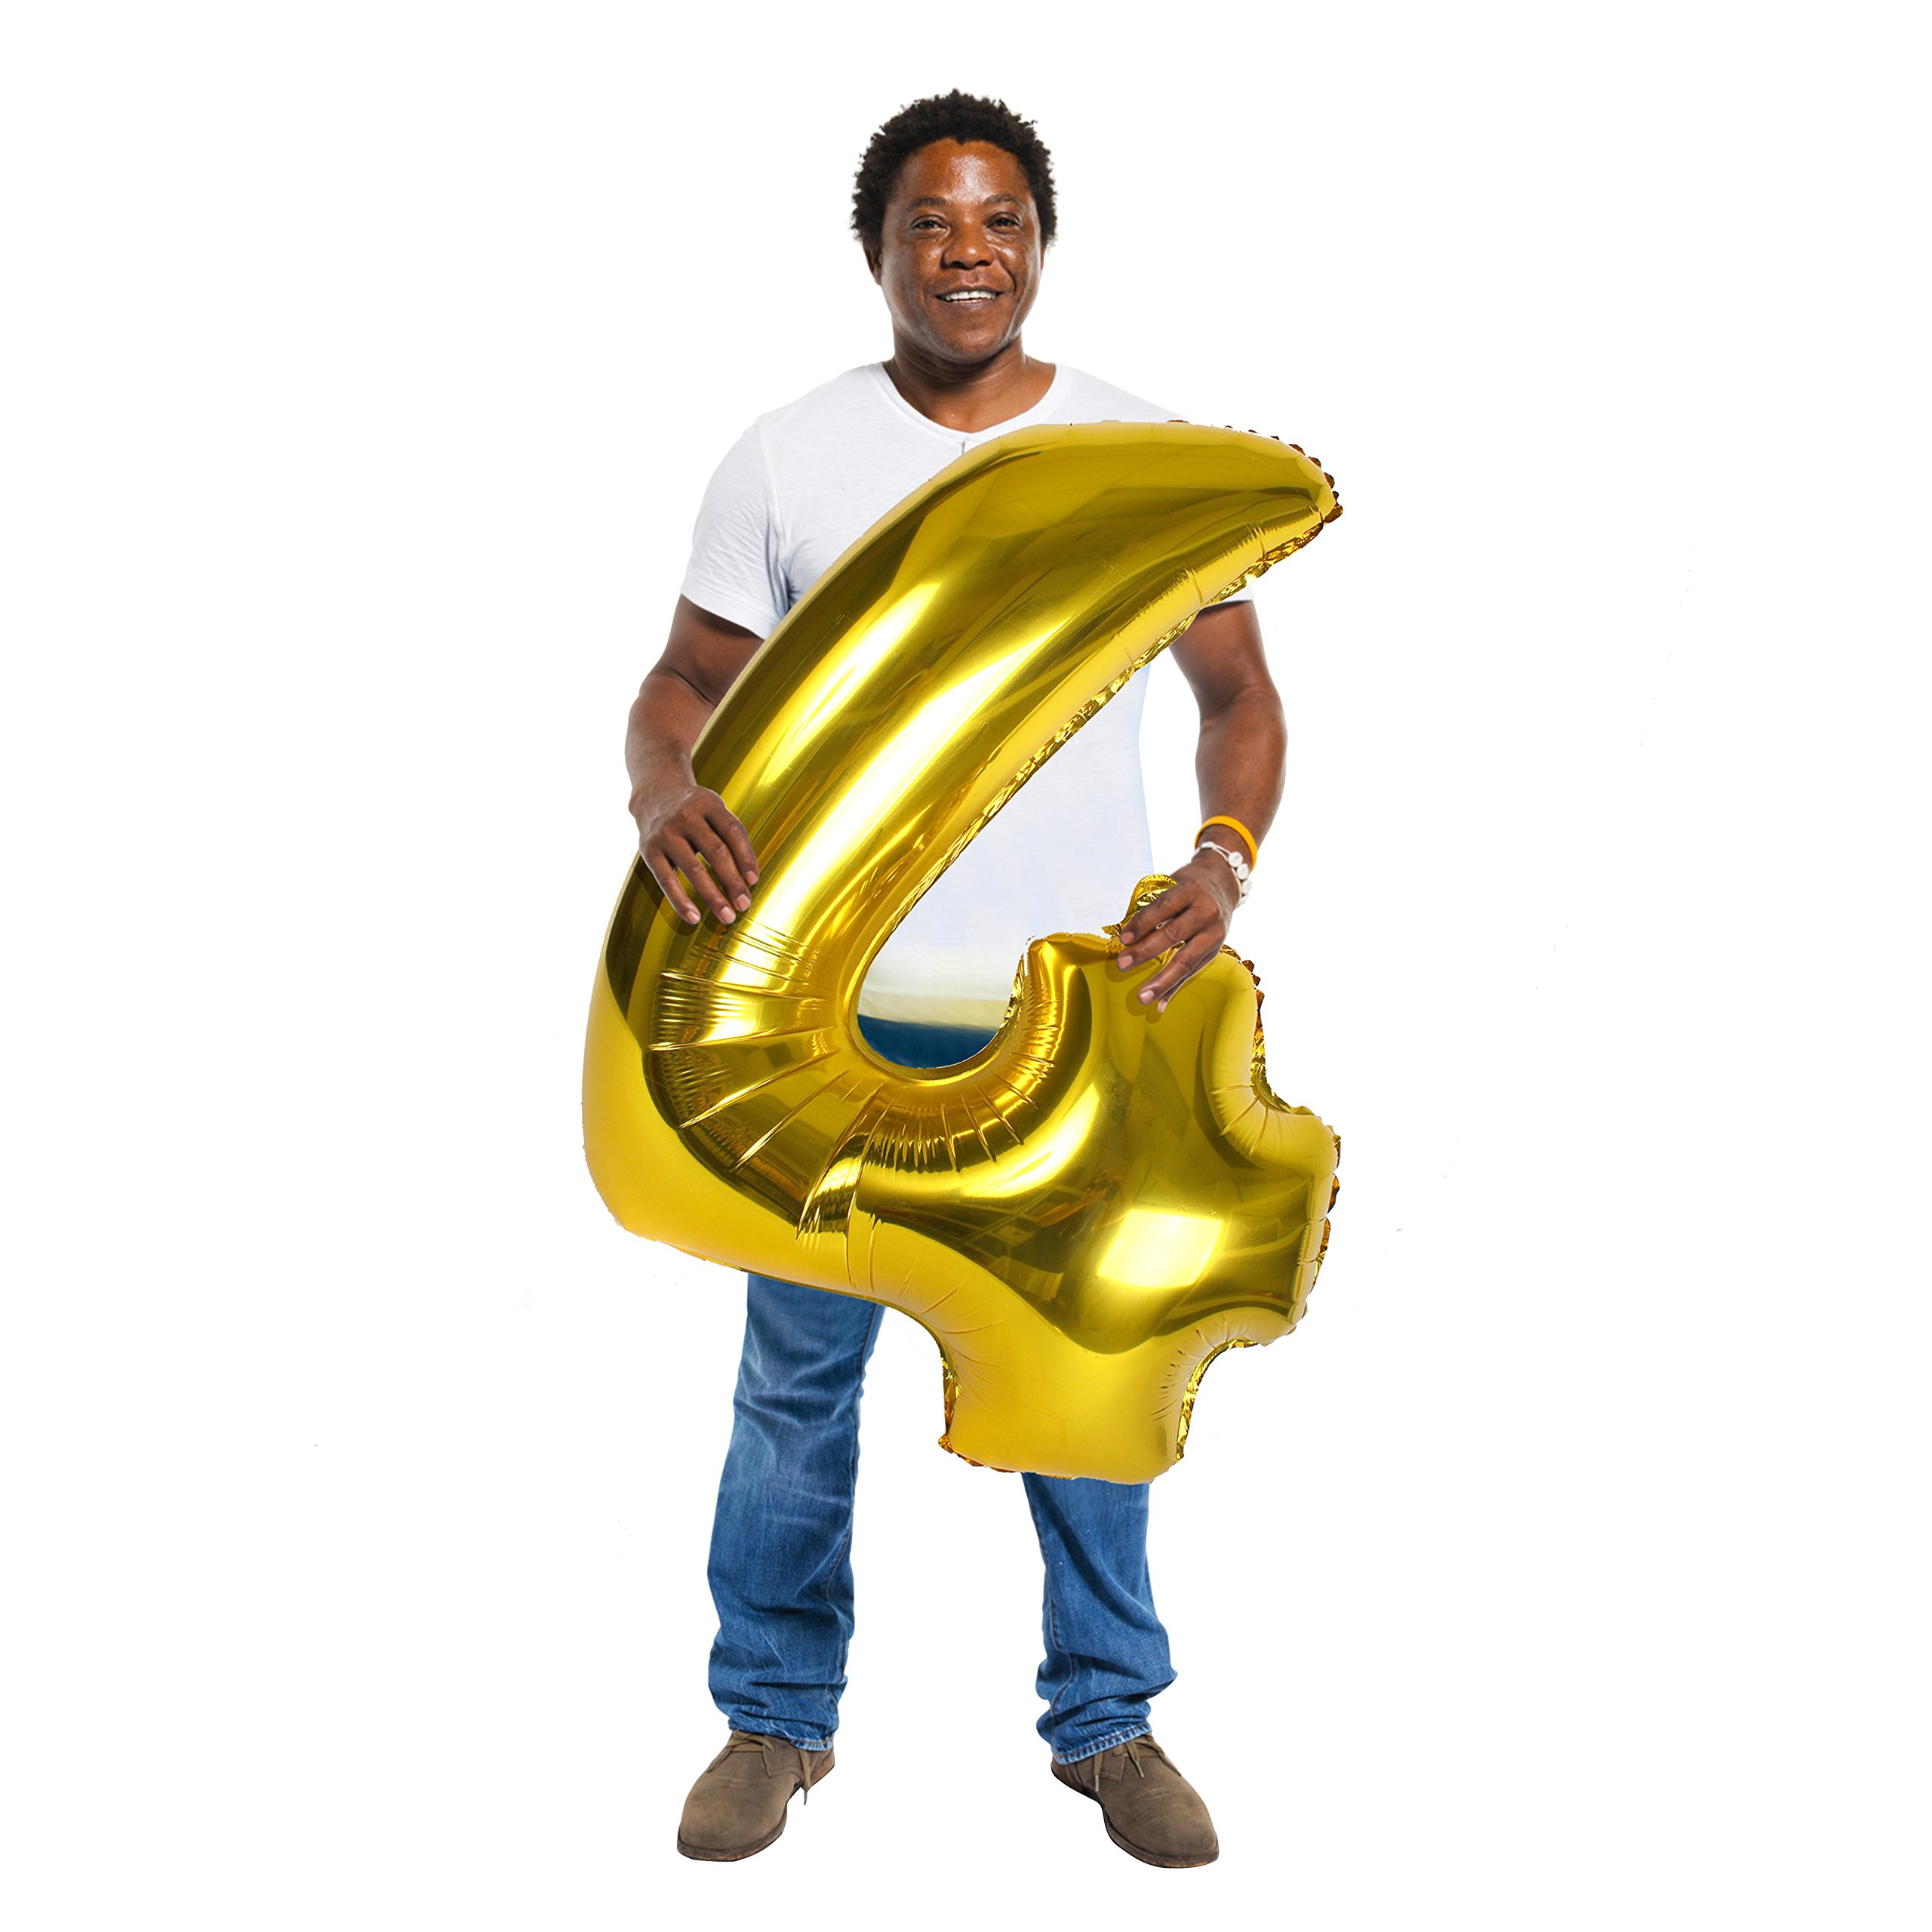 Treasures Gifted 40 Inch Gold Number 4 Balloon Large Foil Mylar Balloon for Birthday Party Wedding Anniversary Graduation Decorations Jumbo Foil Photo Props Picture Booth Big Ornaments